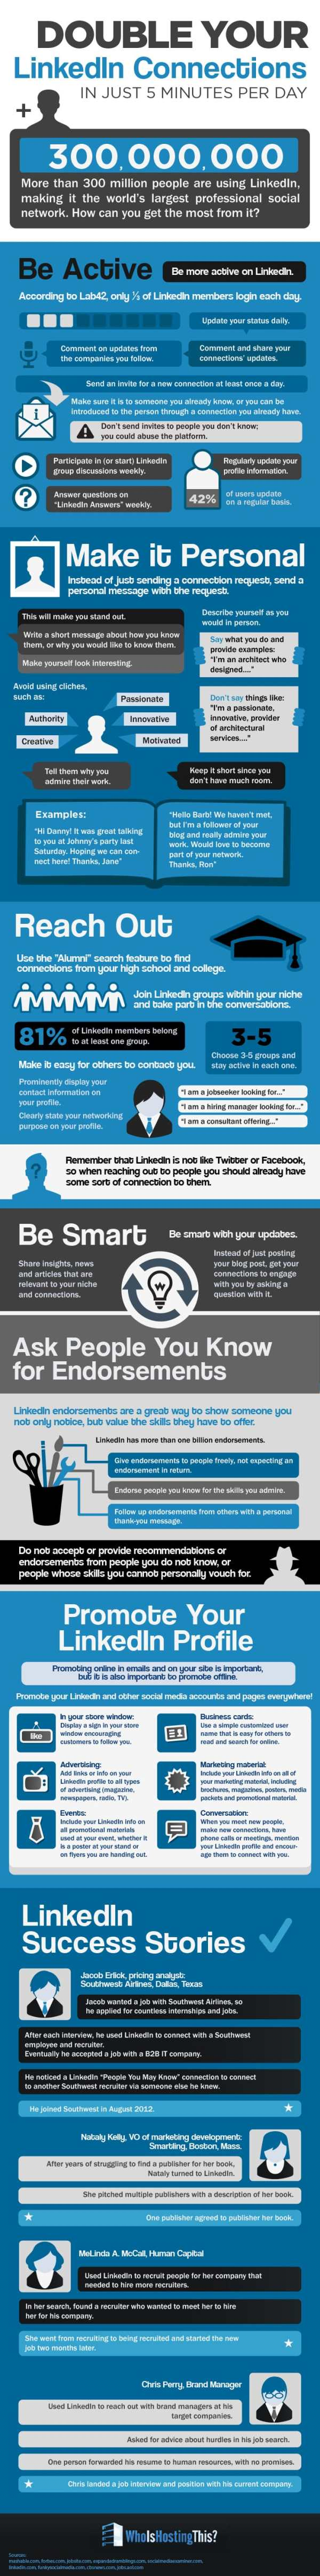 How to double your LinkedIn connections #linkedin #infographic